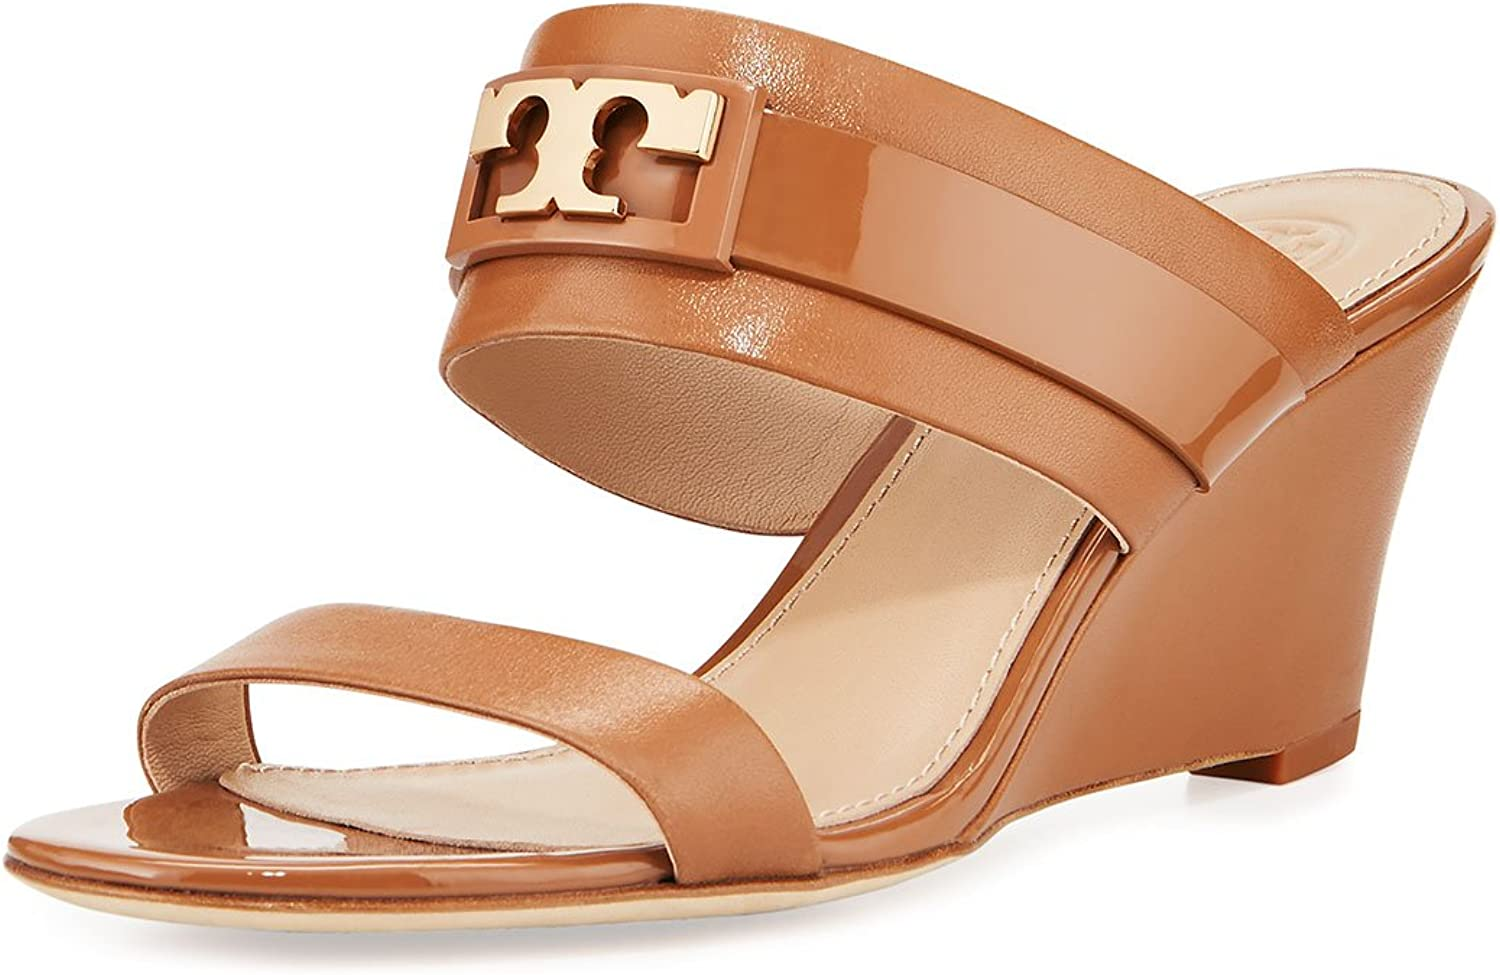 Tory Burch Gigi Calfskin and Patent Leather Wedge Sandals, Royal Tan